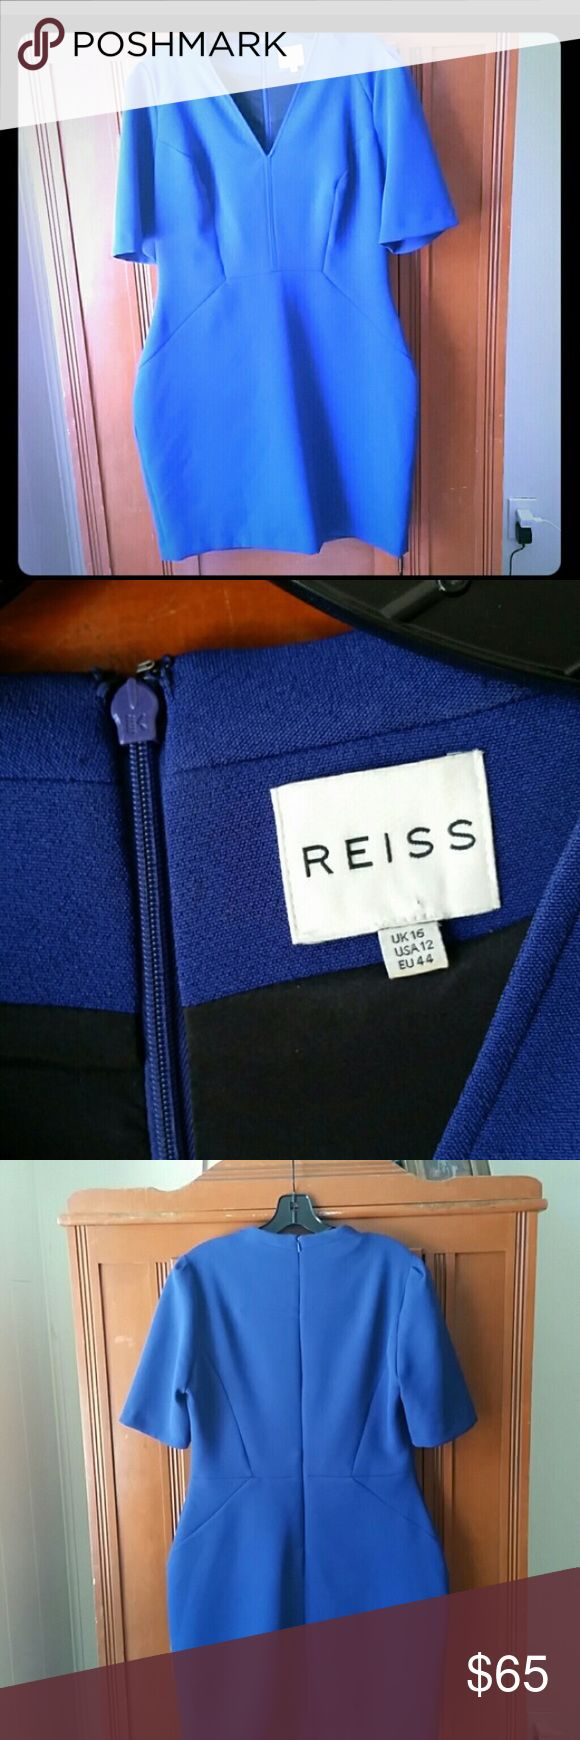 Beautiful Cobalt Blue Reiss Dress Very flattering Reiss dress. Worn once to a wedding. The color is true to the middle picture, rich and deep in hue.Can be worn for a wedding , cocktail party or special dinner Reiss Dresses Mini